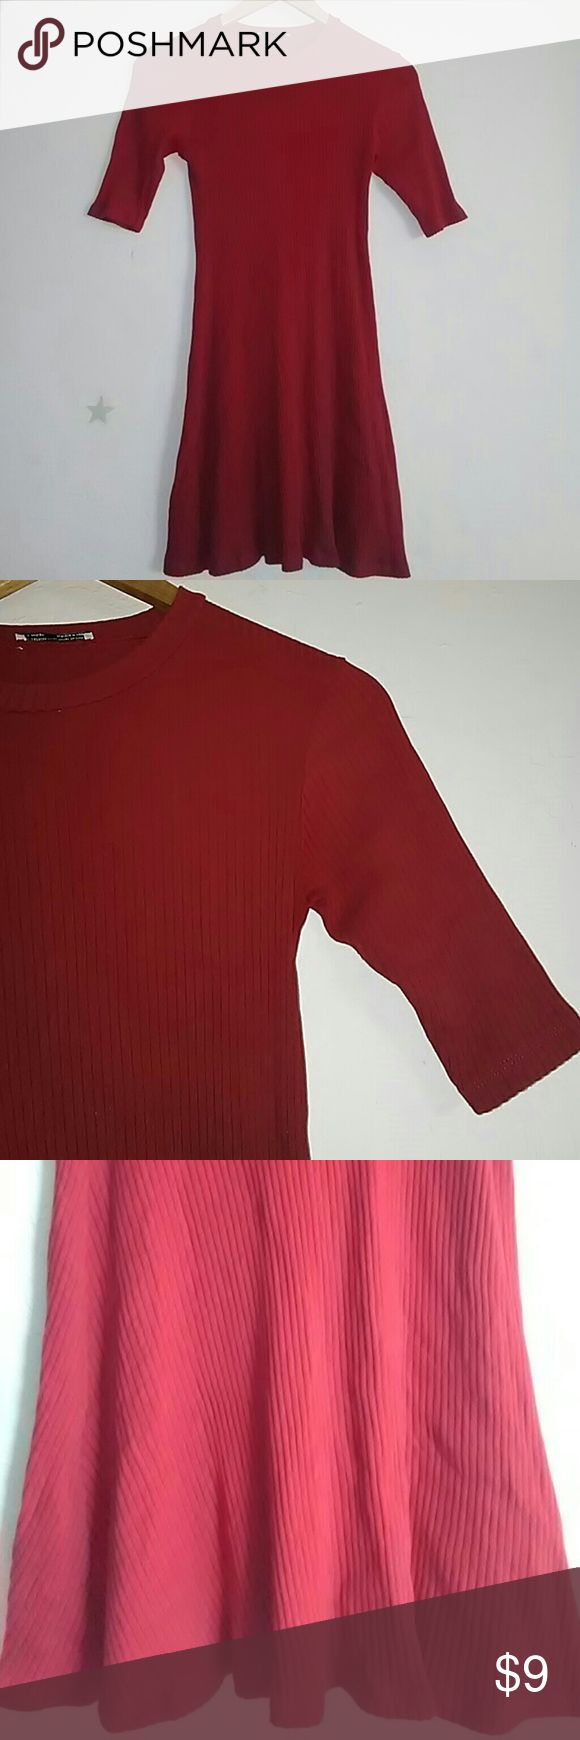 """Zara red tunic dress Excellent condition Size M (run small) Length from top to hem 31"""" Burst approximate 27"""" Lots of stretchy Zara Tops"""